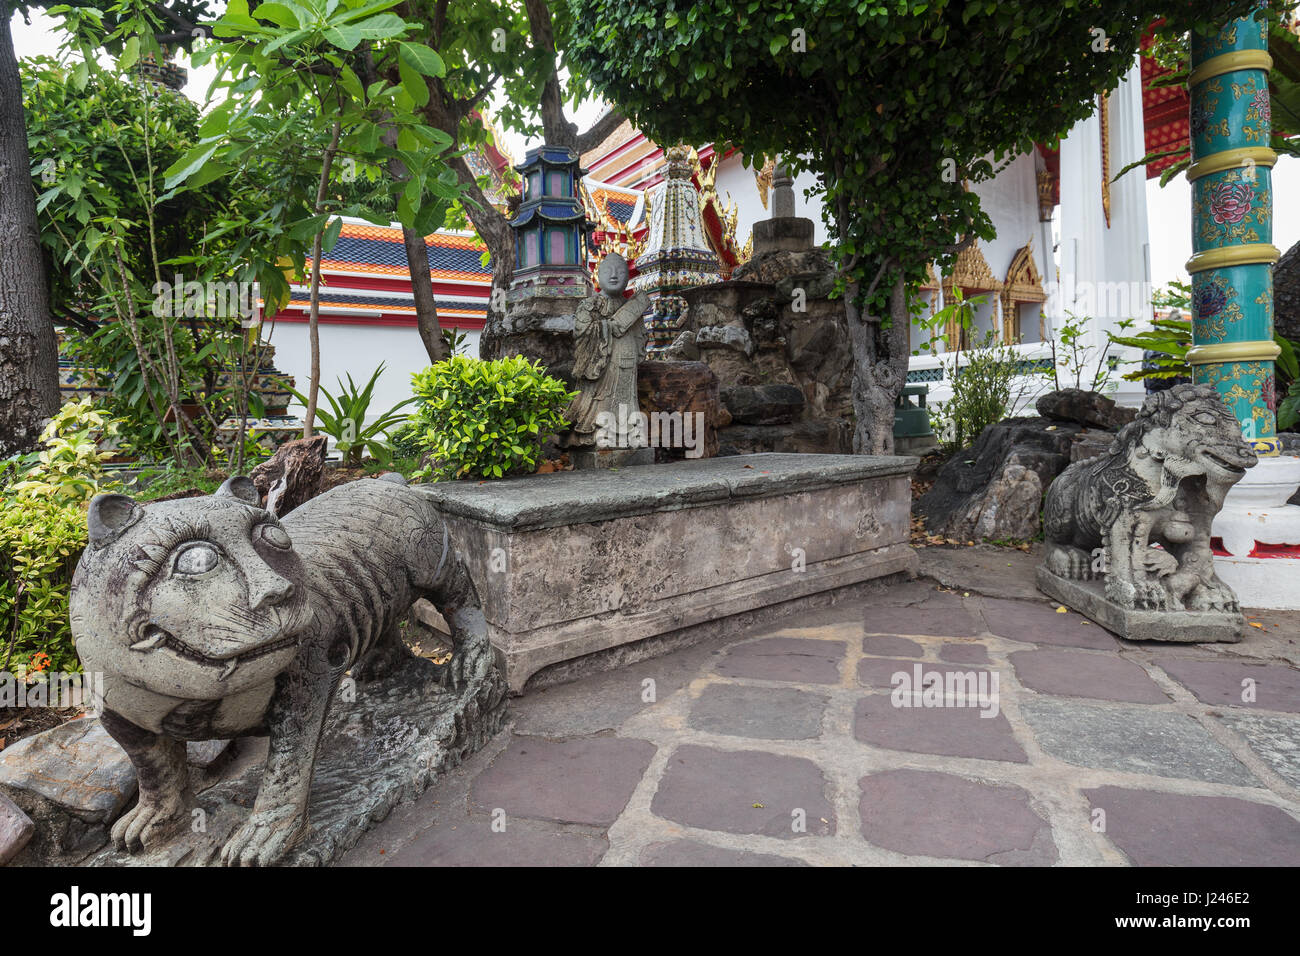 Statues and trees at the Wat Pho (Po) temple complex in Bangkok, Thailand. - Stock Image